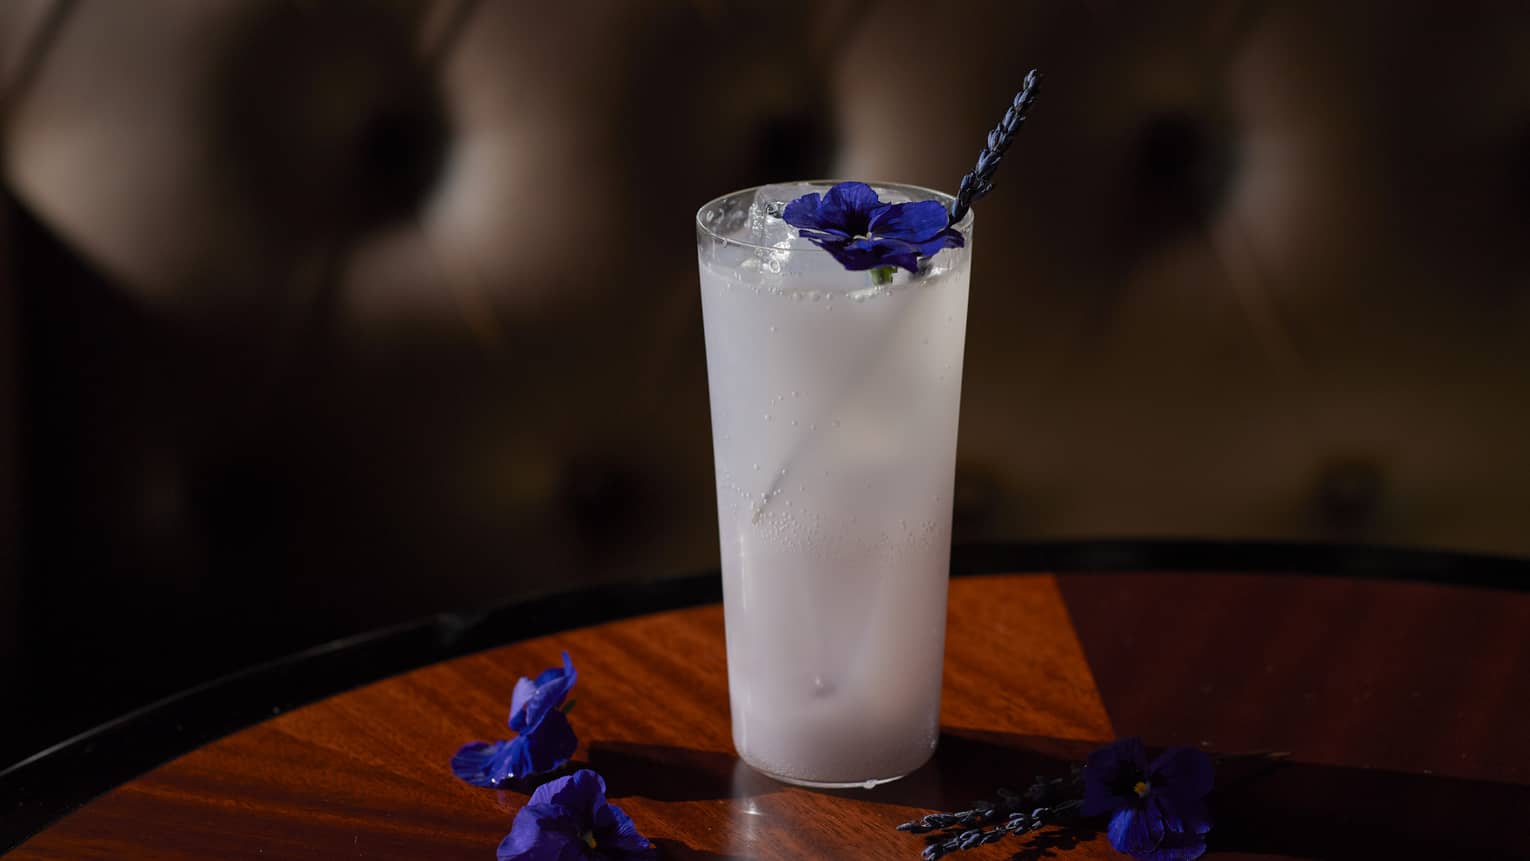 Close-up shot of milky white cocktail on the rocks, garnished with lavender and morning glory flowers atop wooden table